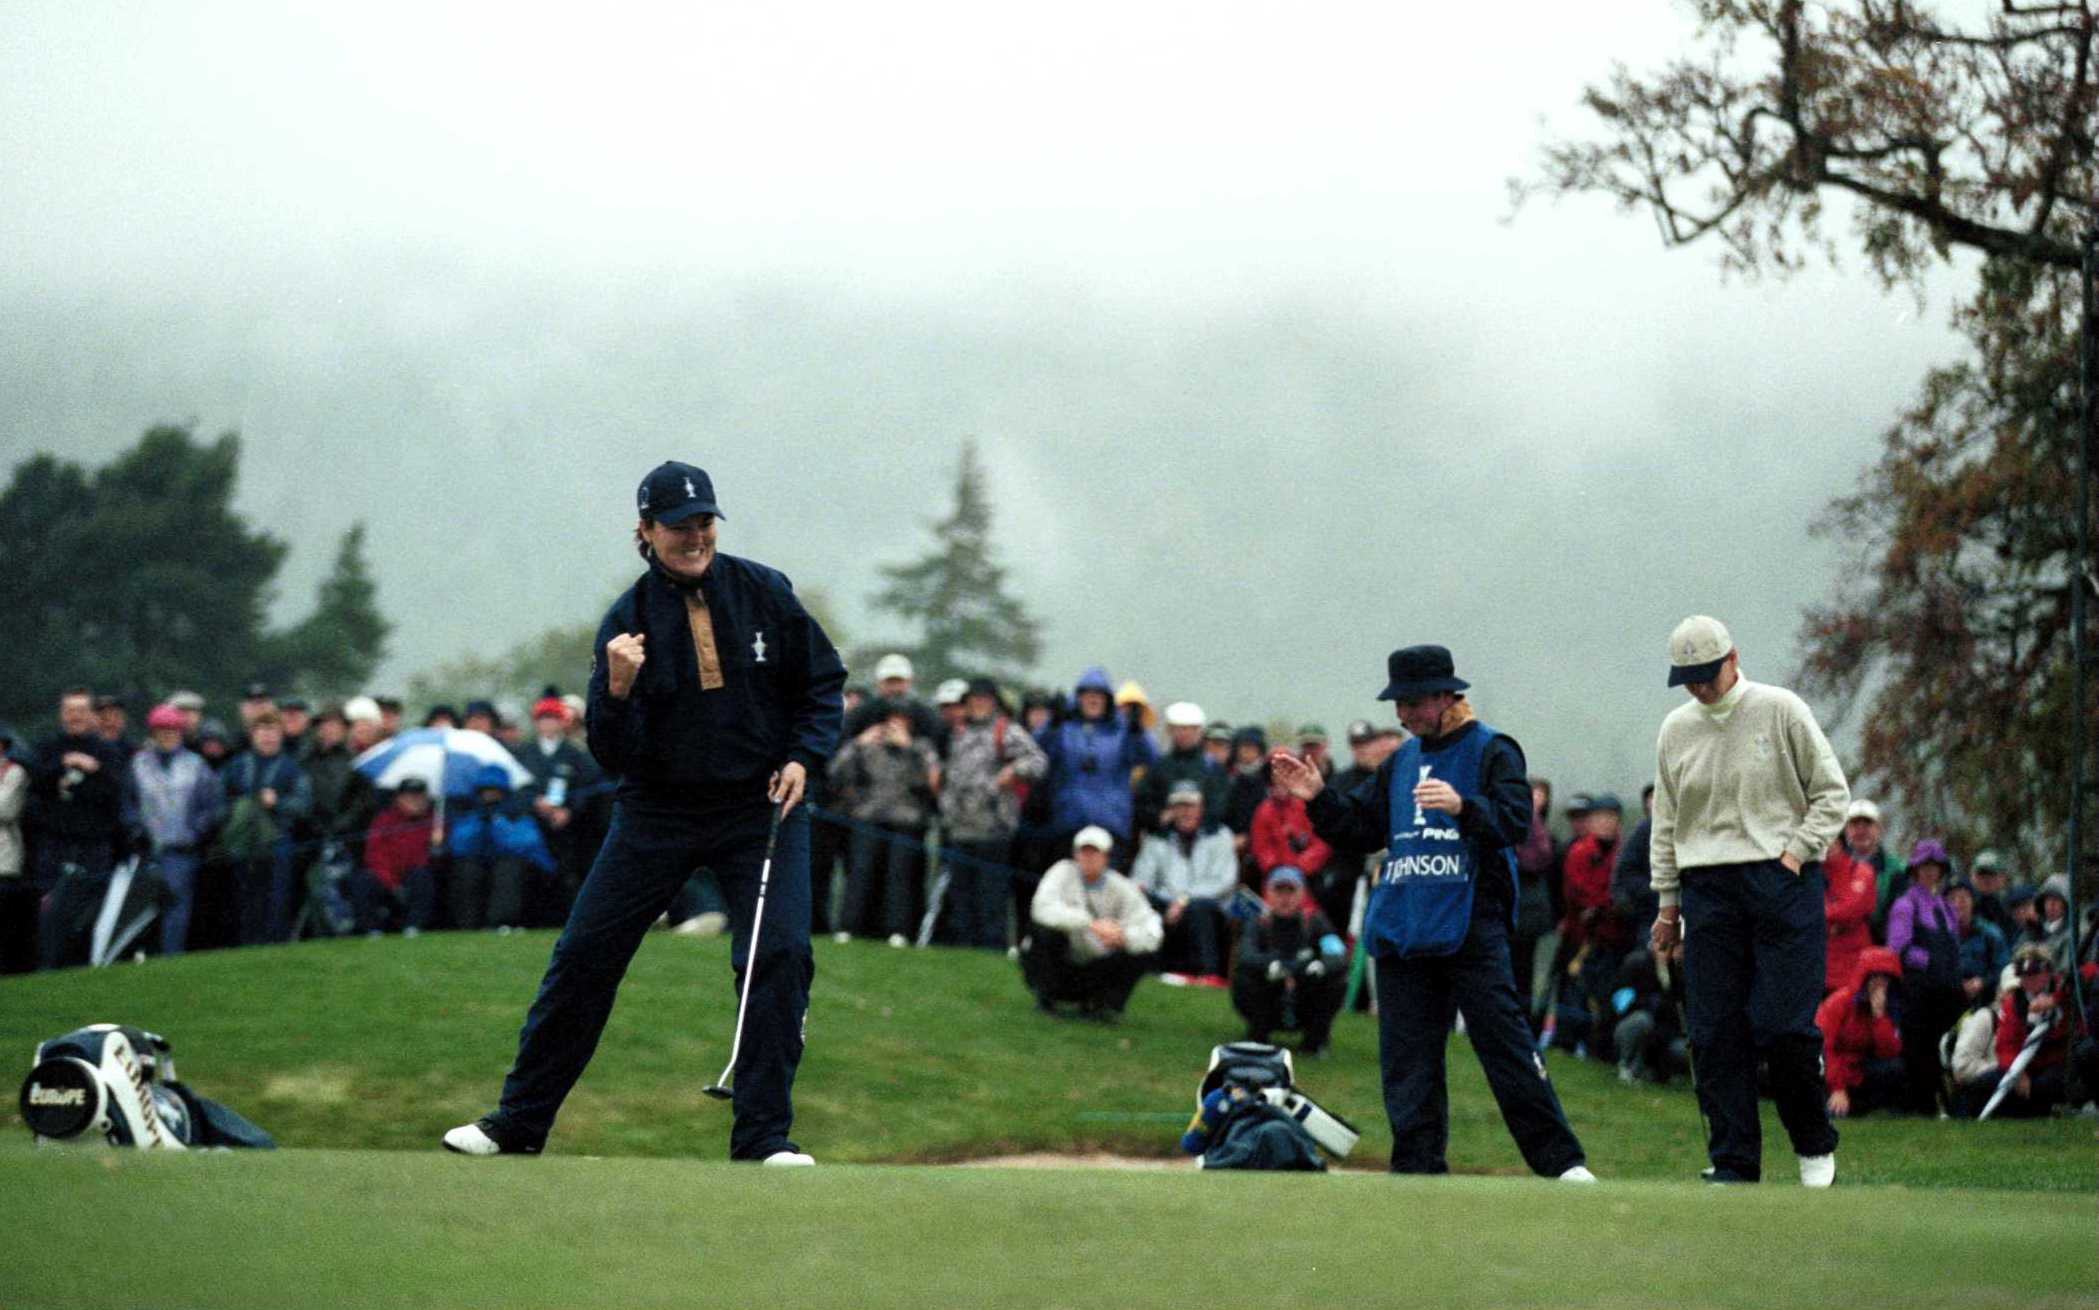 Europe avoided losing four in a row at Loch Lomond (Photo: Getty Images)